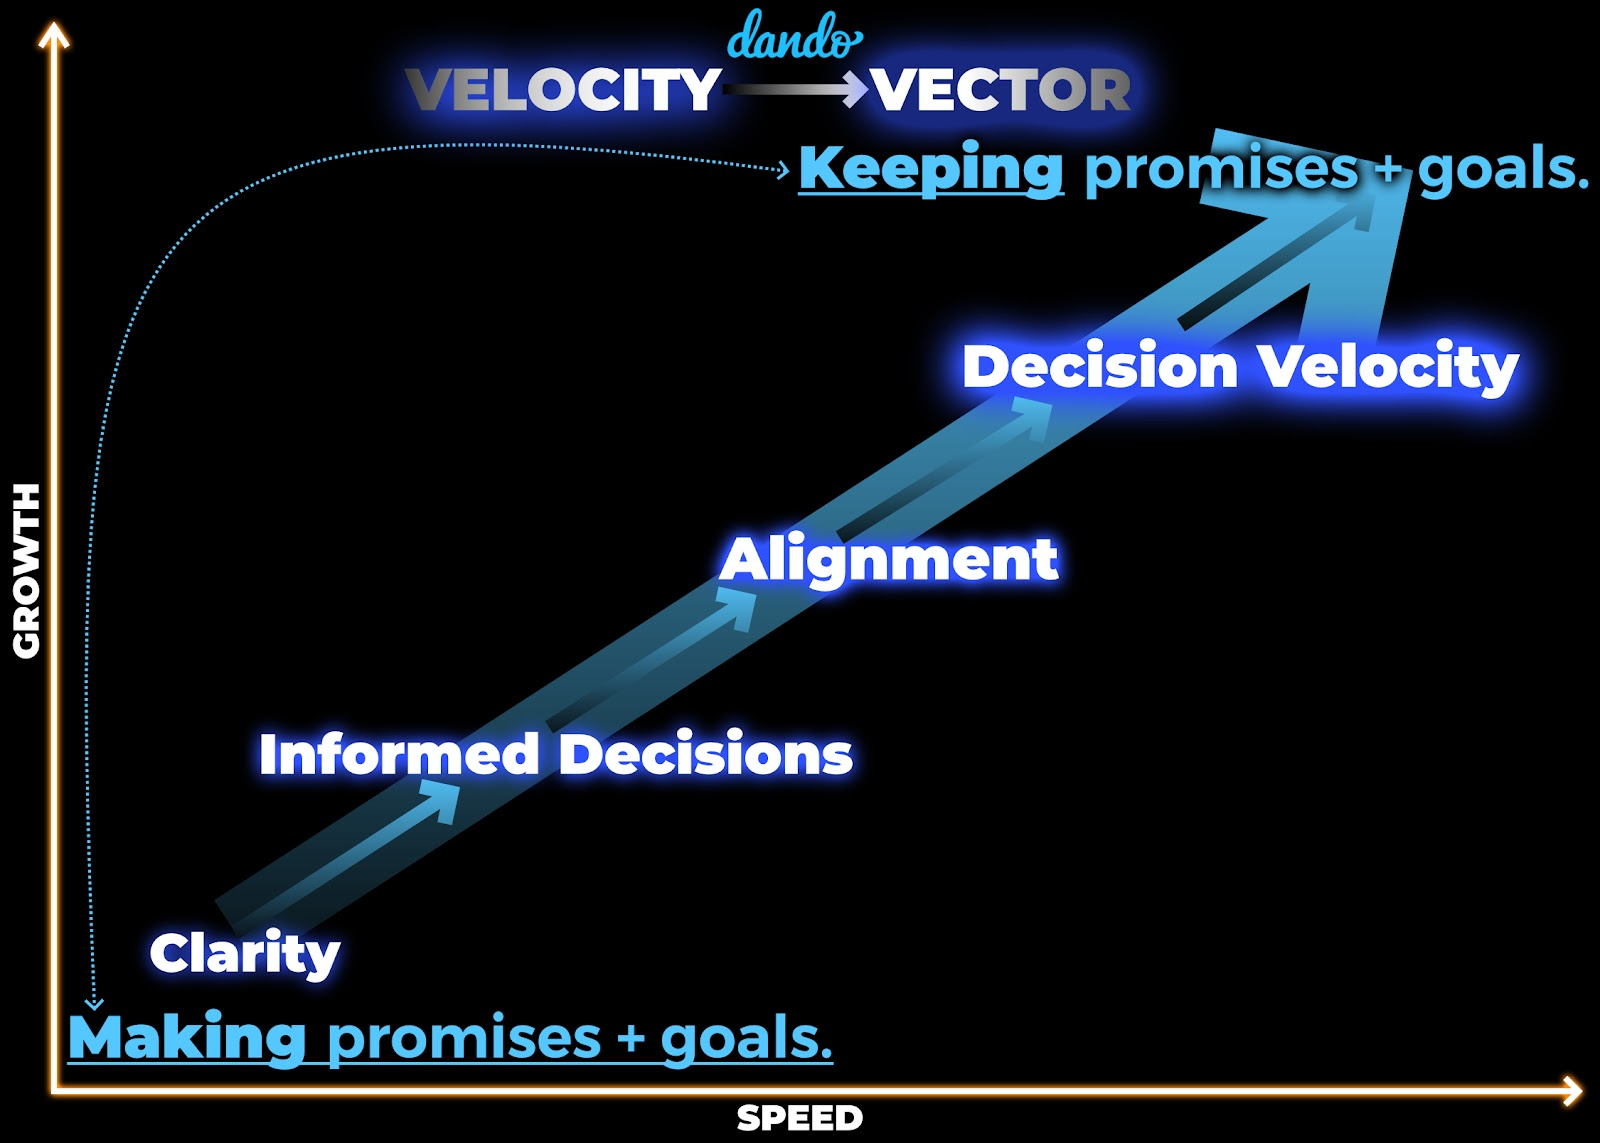 Commander's Intent: Part of the Velocity Vector